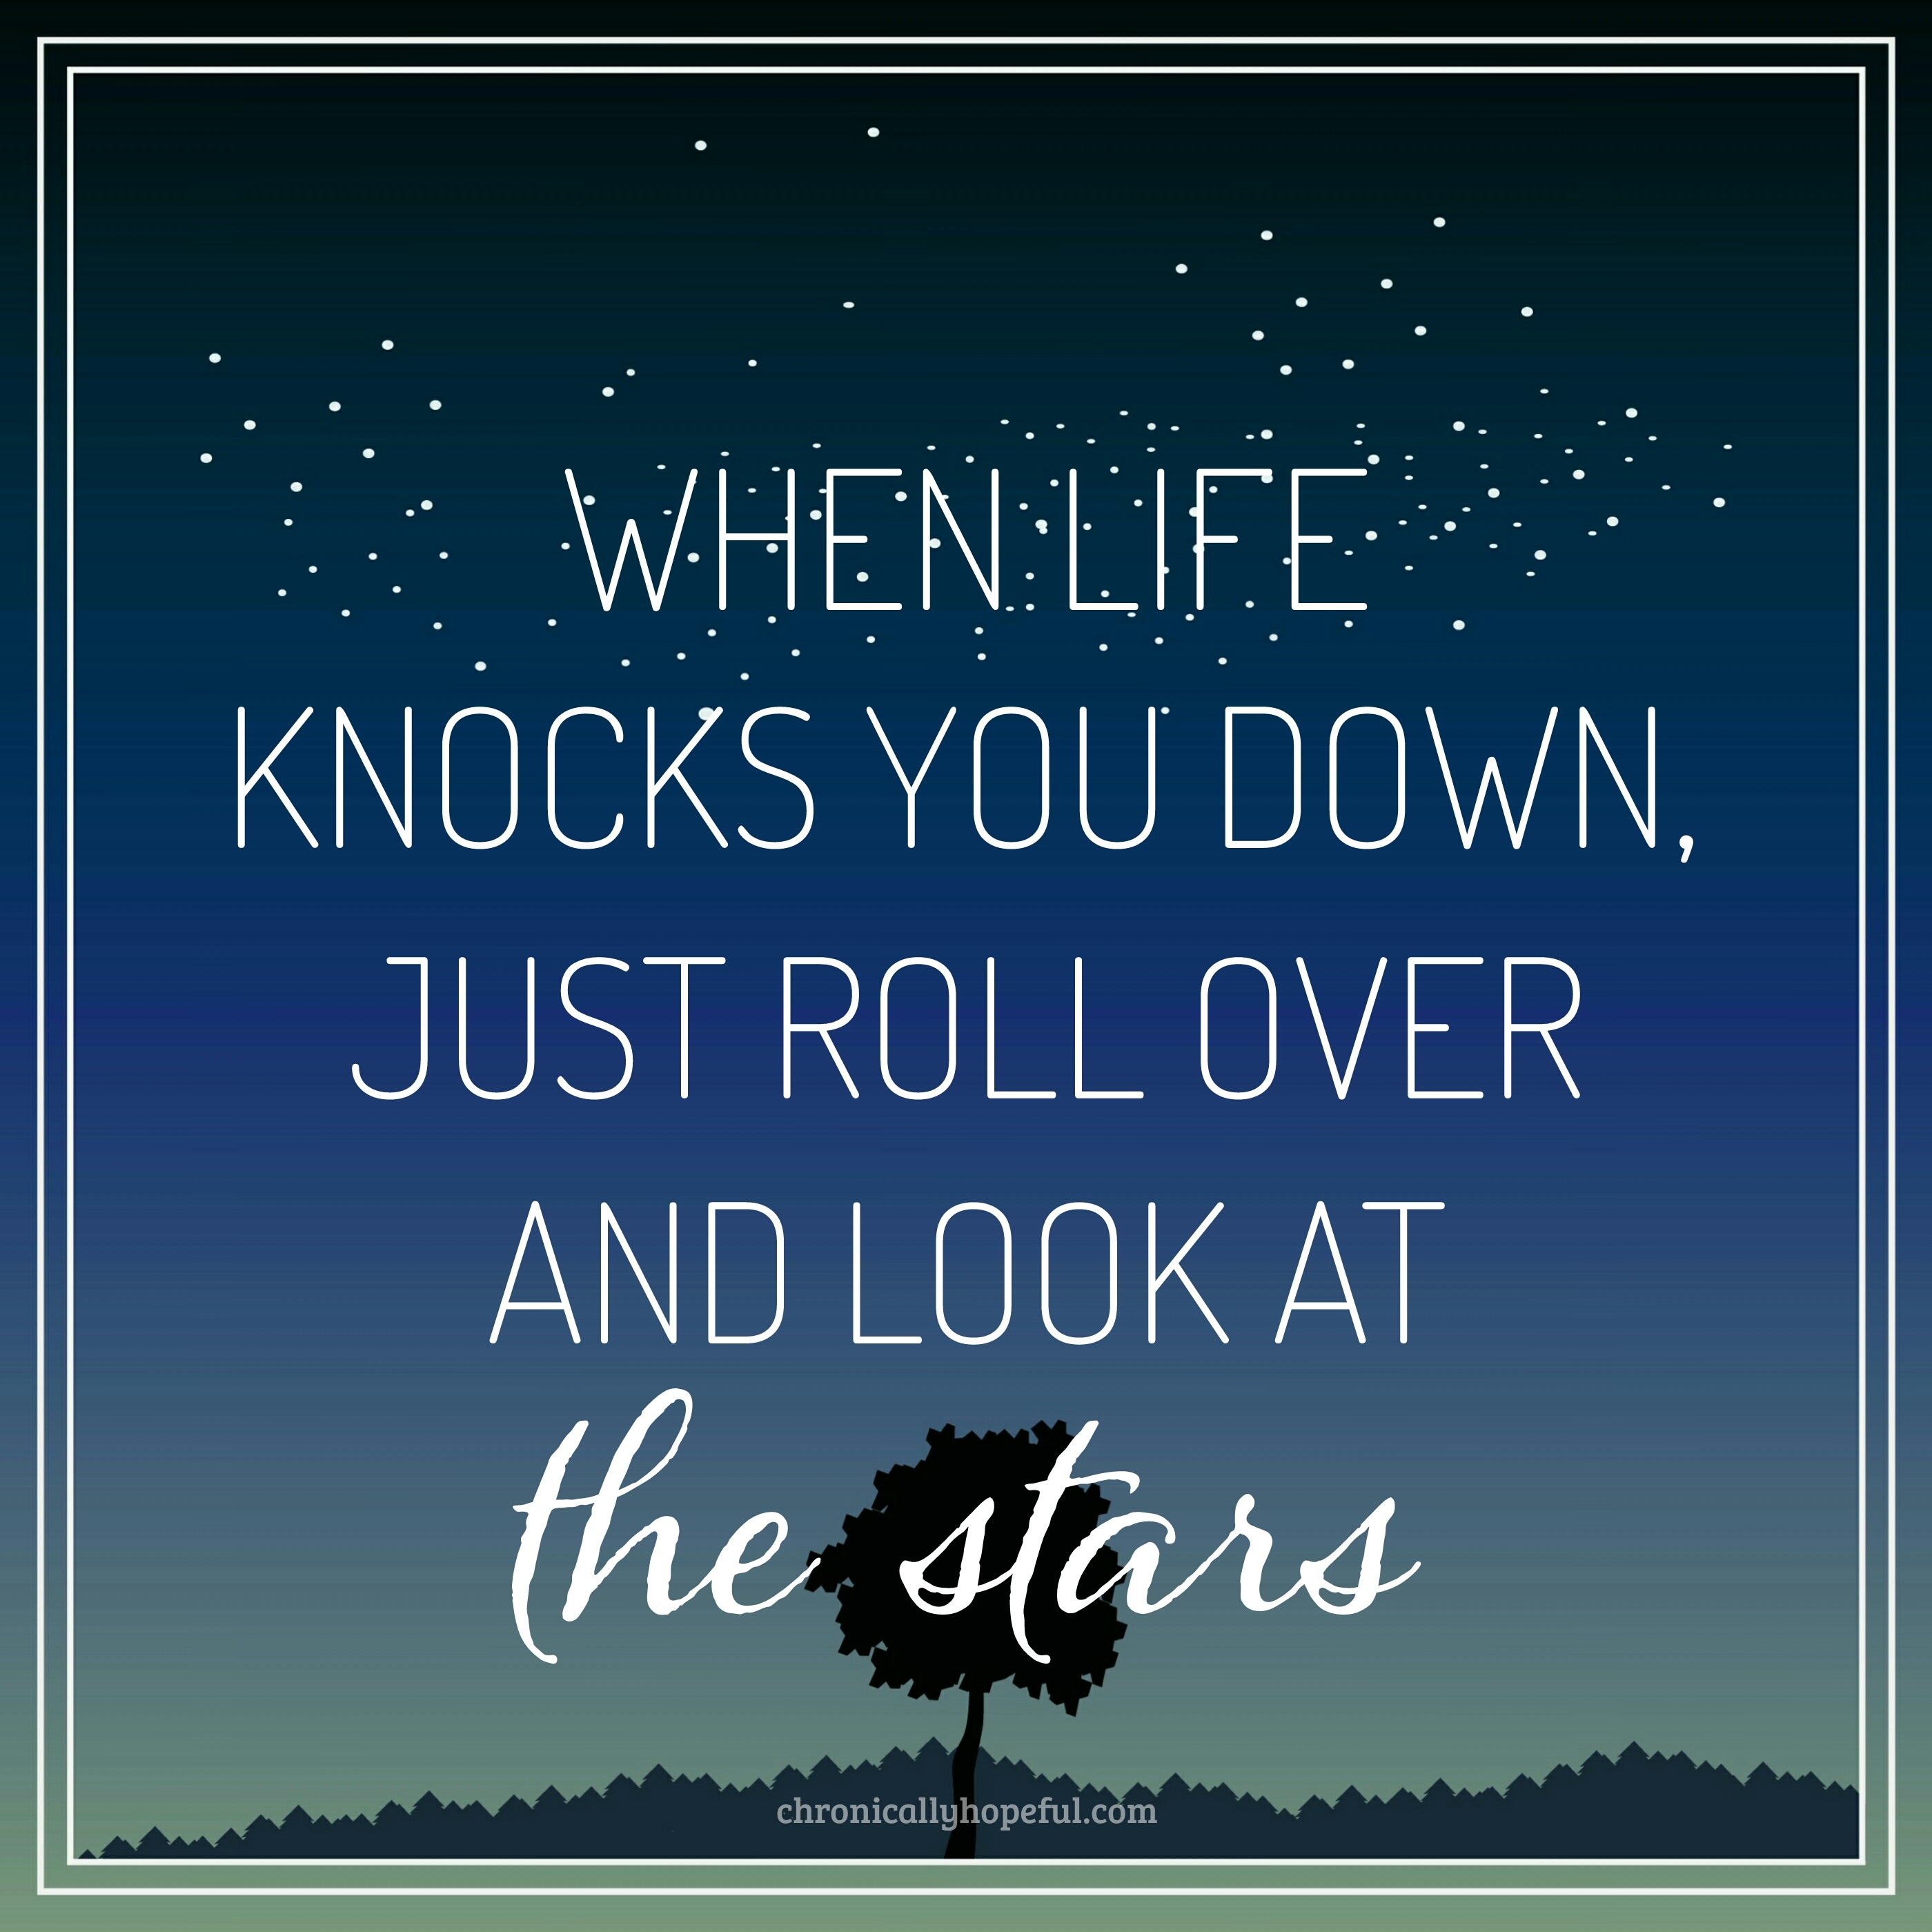 When life knocks you down, look at the stars